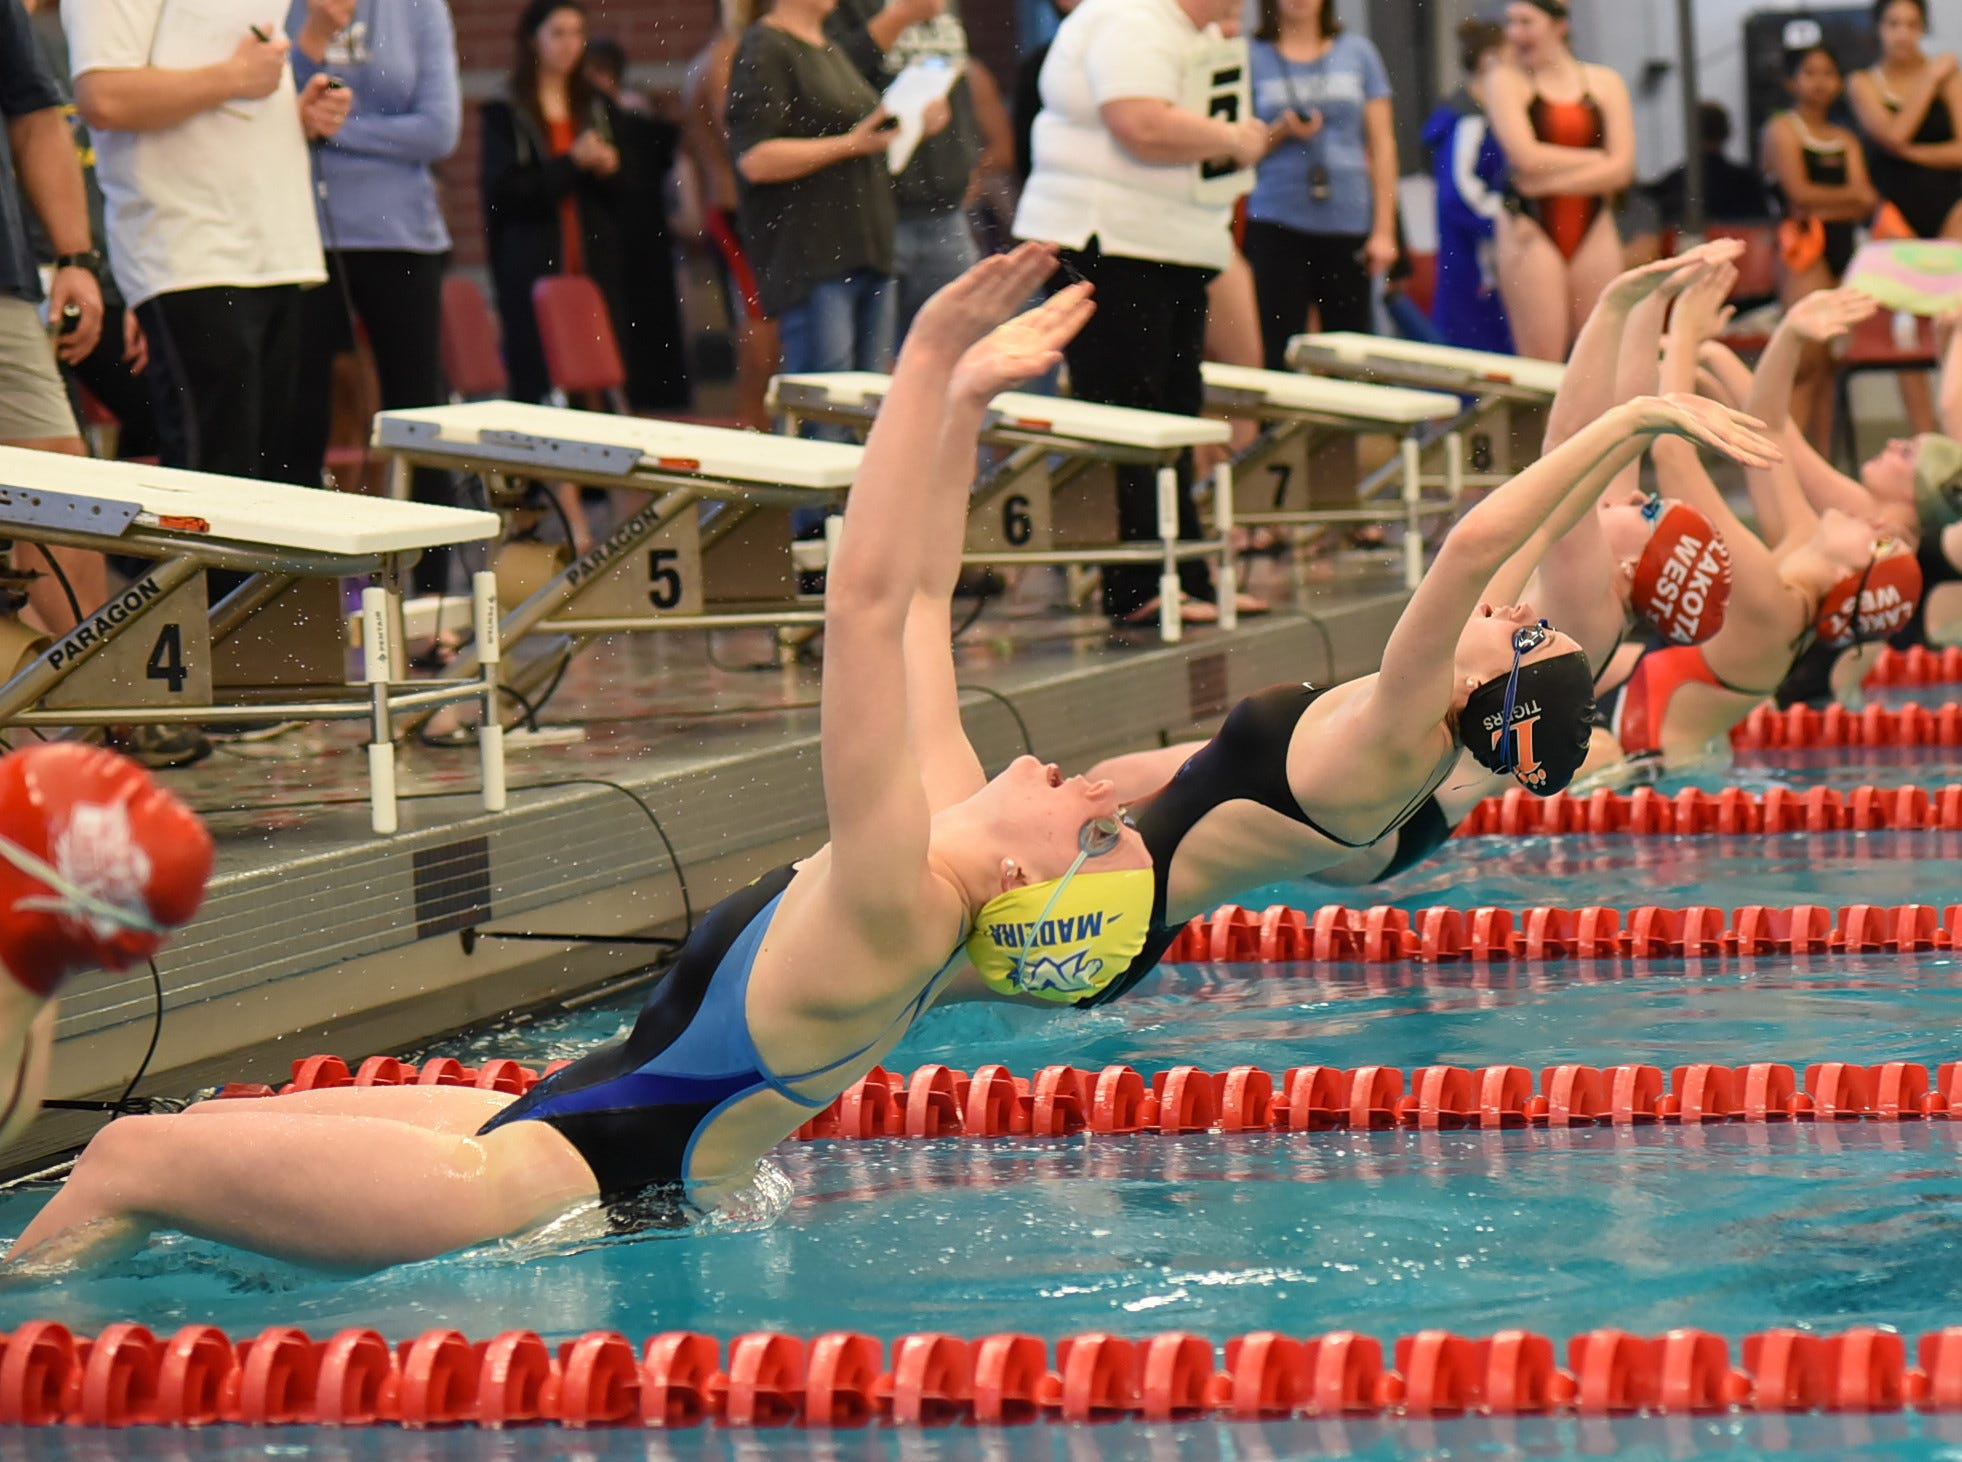 The final heat of the girls 100 backstroke is underway in the preliminaries at Princeton for the Southwest Ohio Swimming and Diving Classic, January 19, 2019.